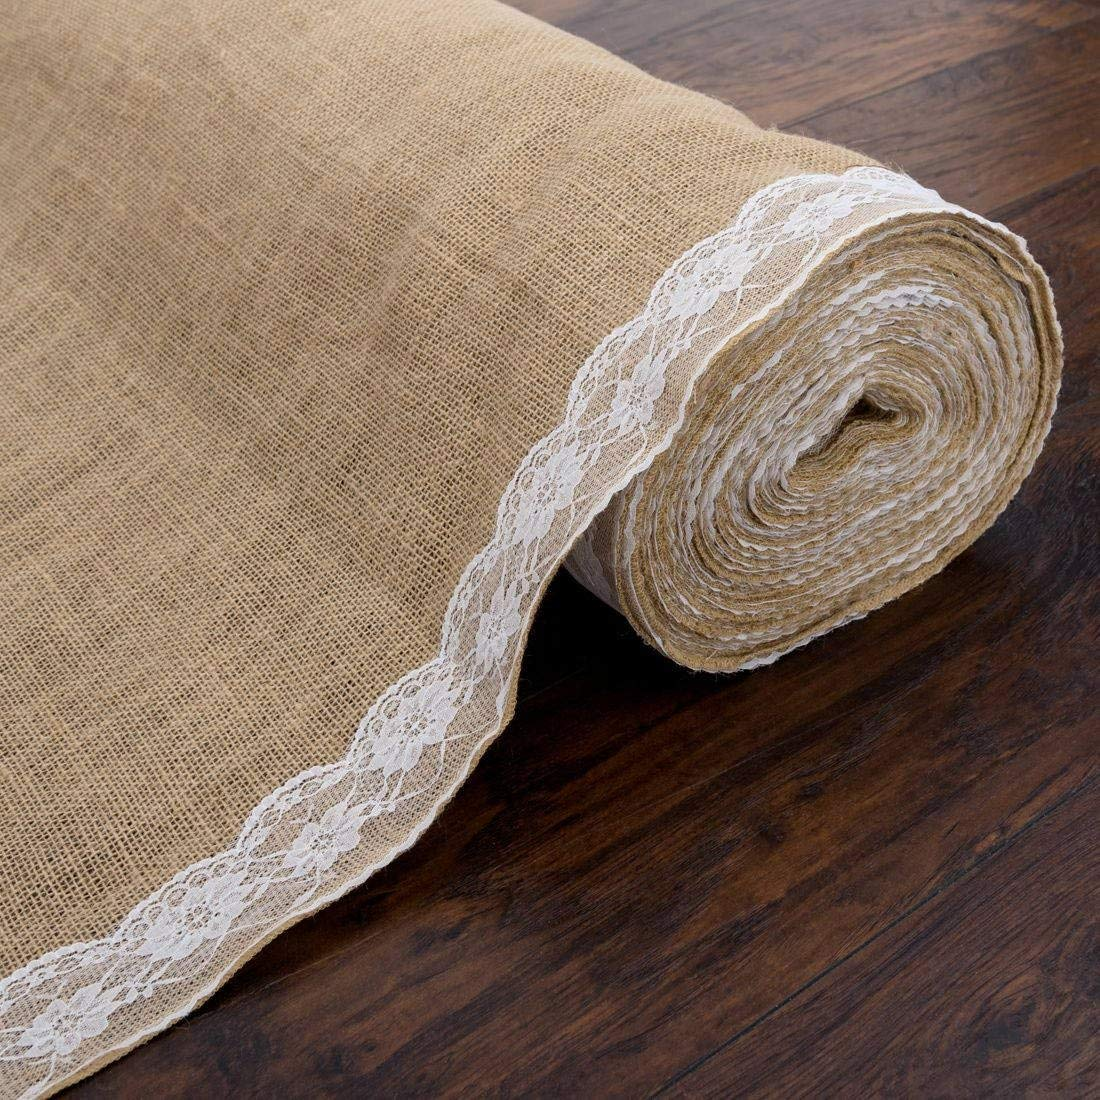 AK Trading 40'' Wide Natural Burlap Wedding Aisle Runner with Ivory Lace - 40'' Wide x 15 feet Long by AK TRADING CO.